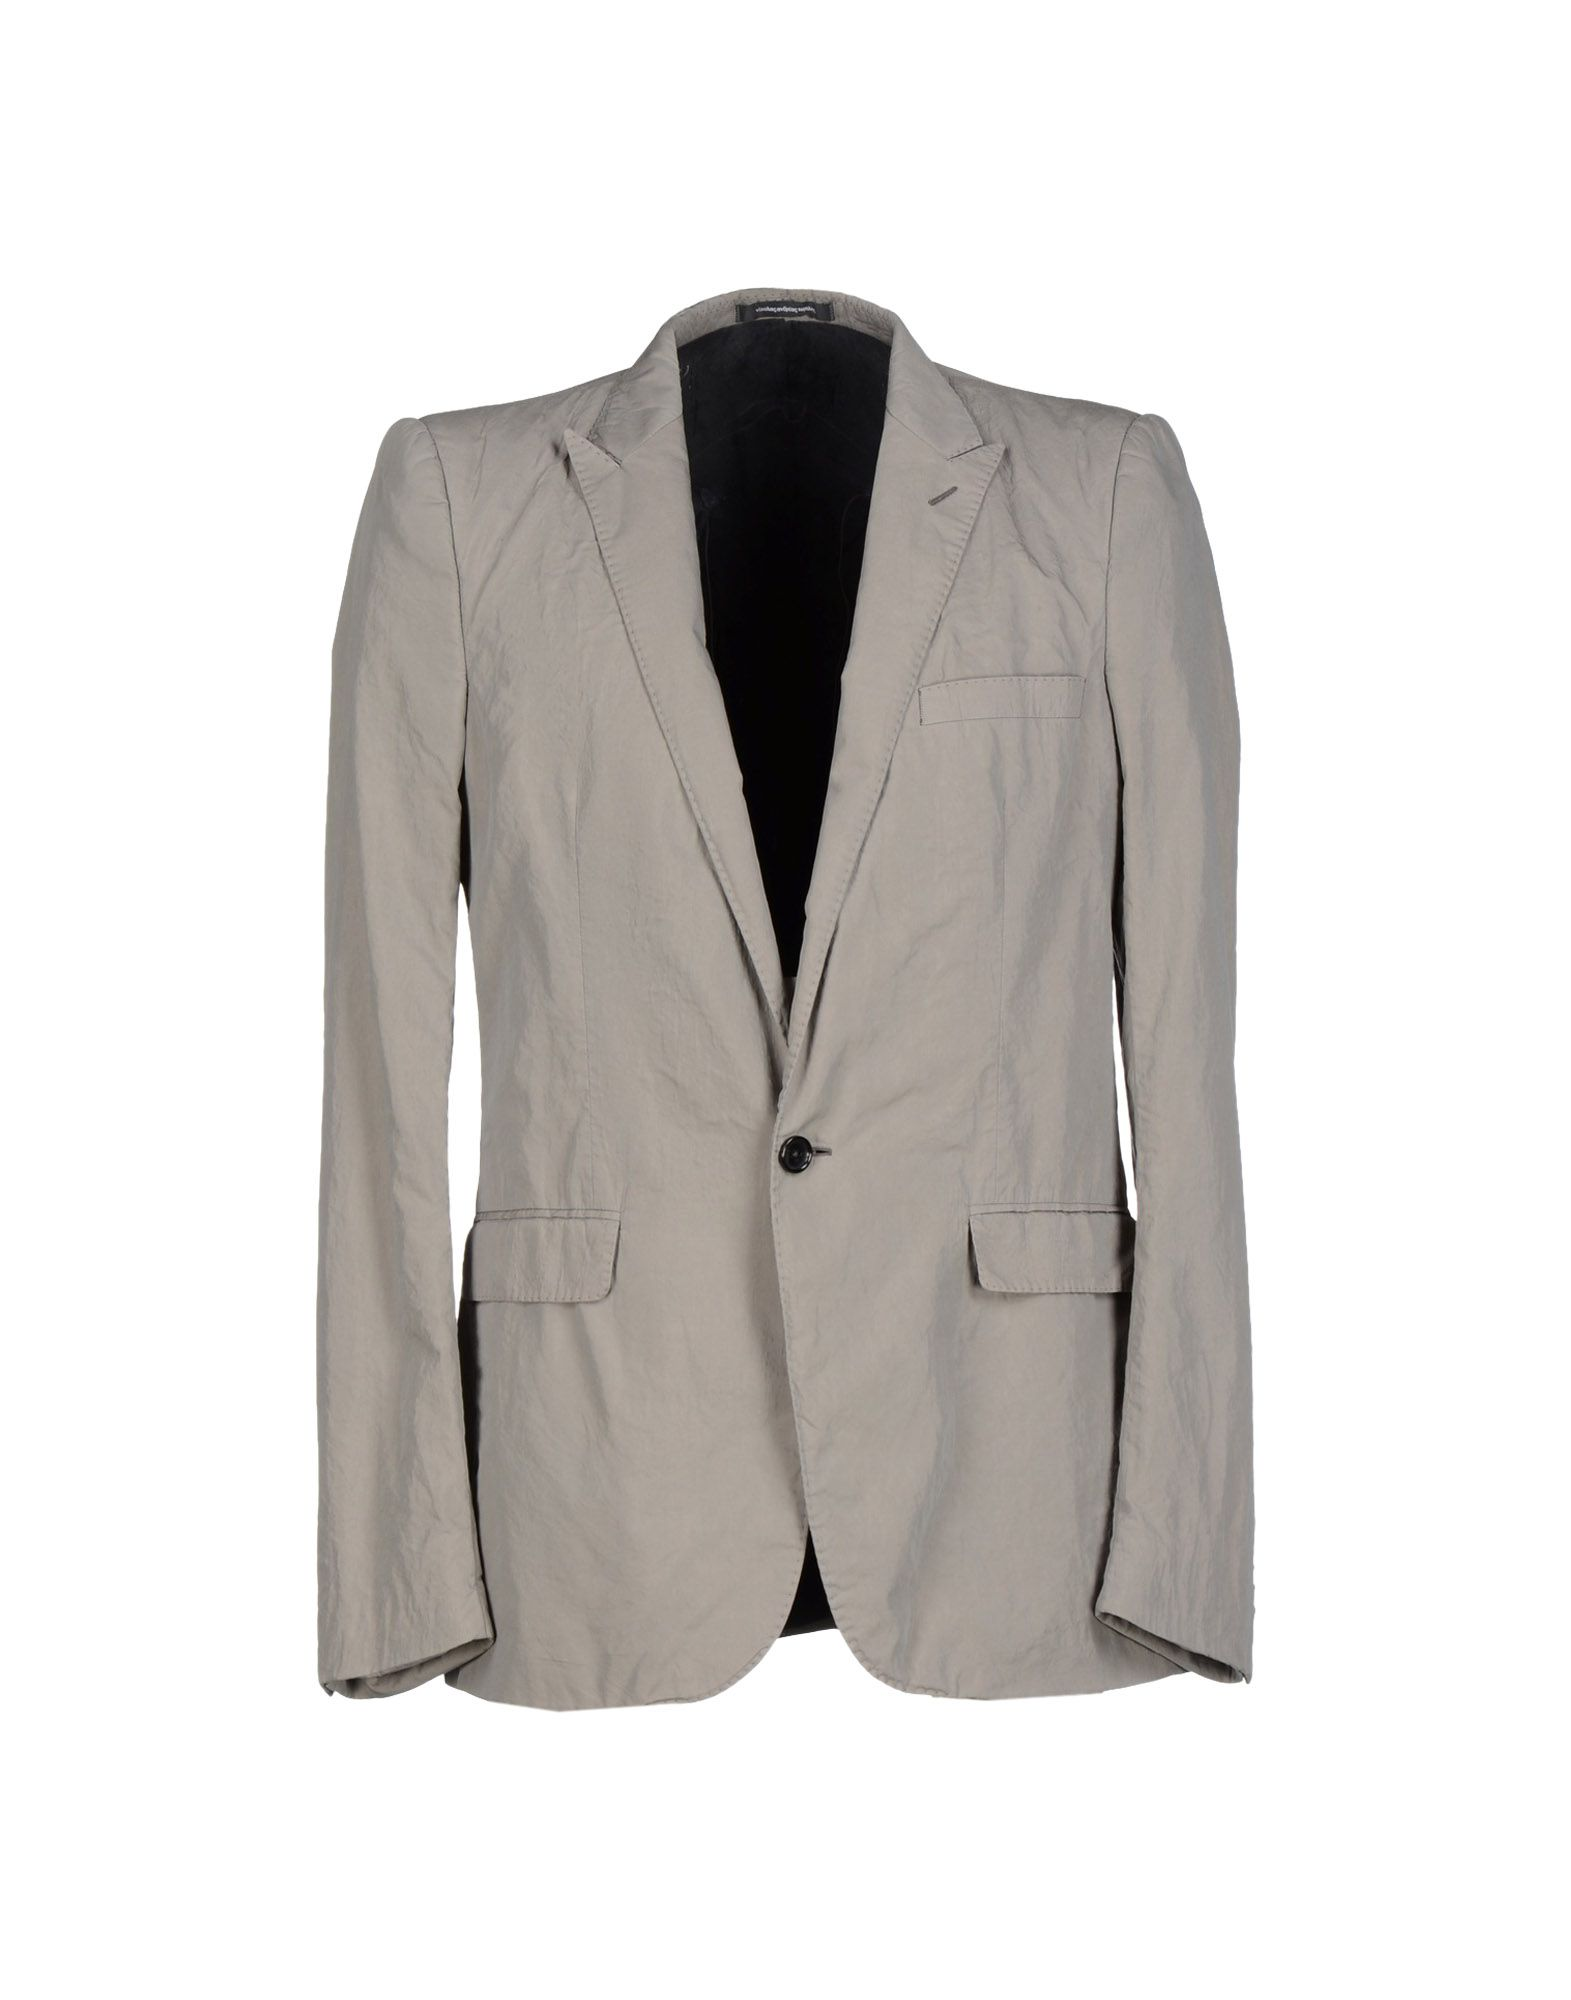 NICOLAS ANDREAS TARALIS Blazer in Light Grey